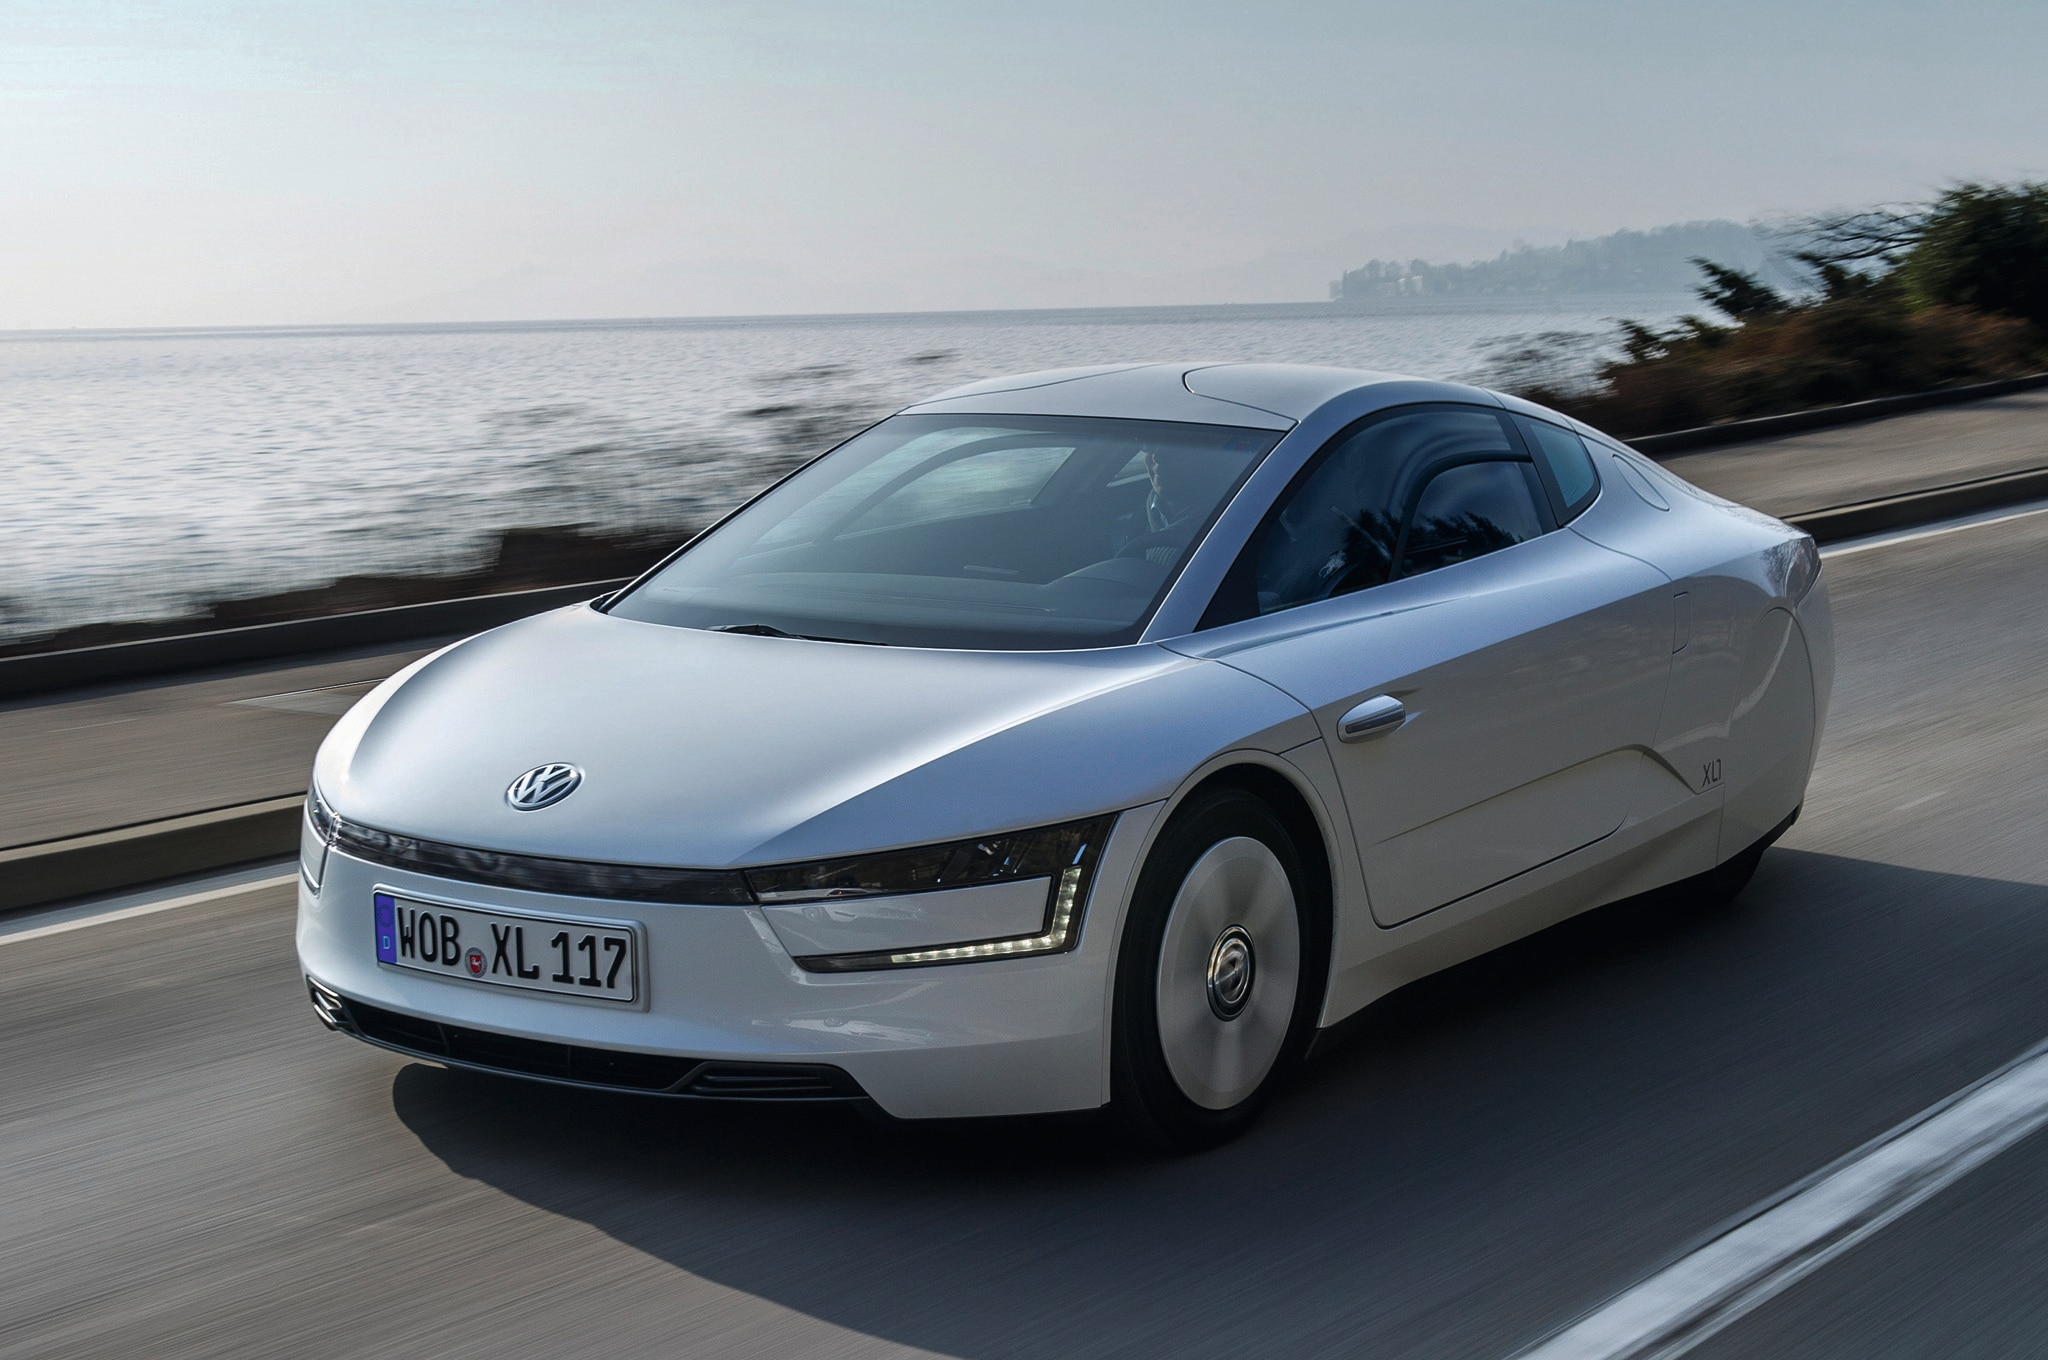 2014 Volkswagen Xl1 Front Three Quarters 21